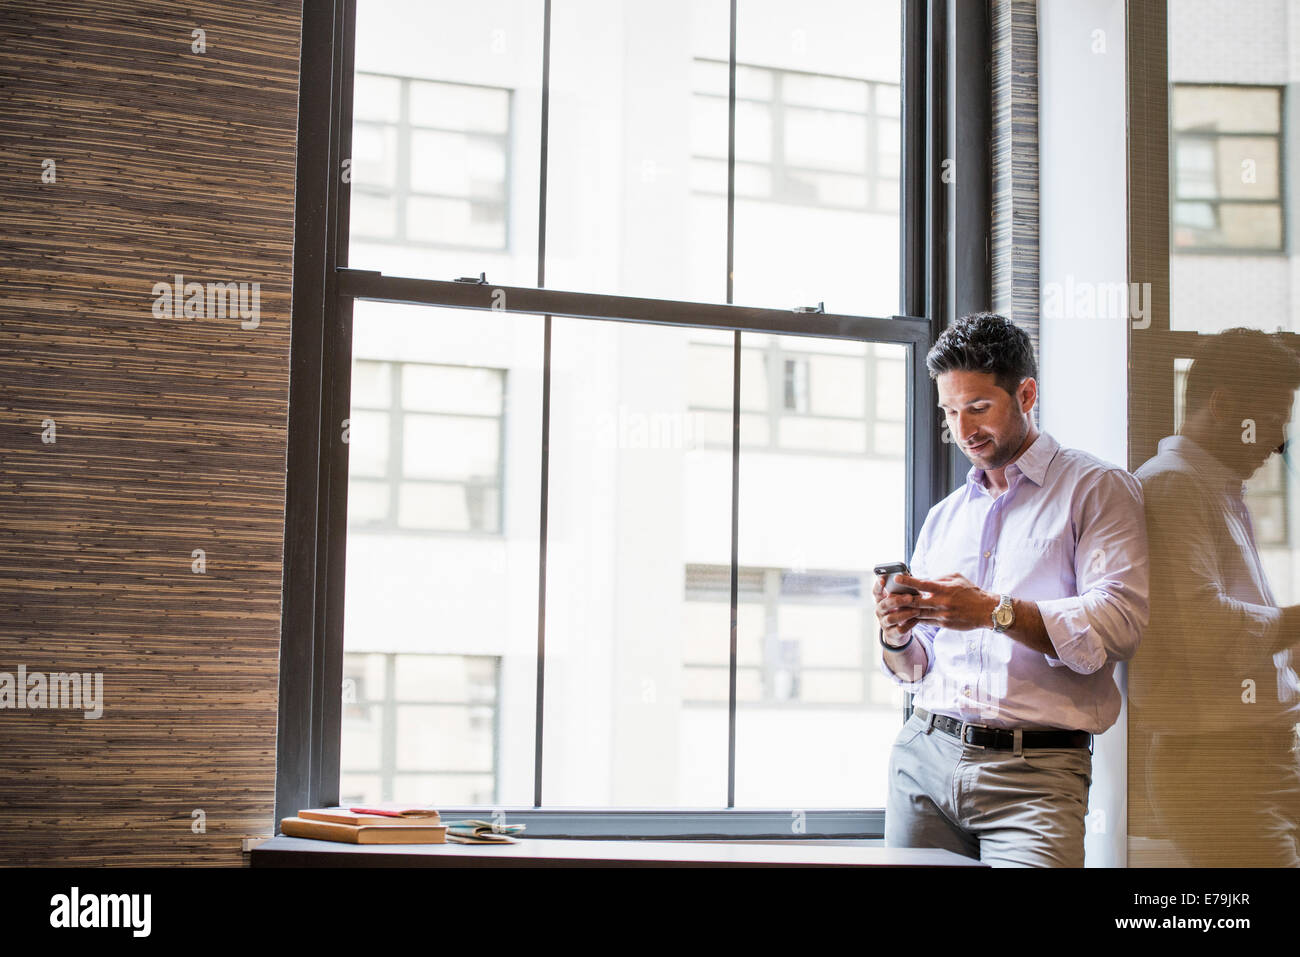 Office life. A man in an office checking his smart phone. - Stock Image